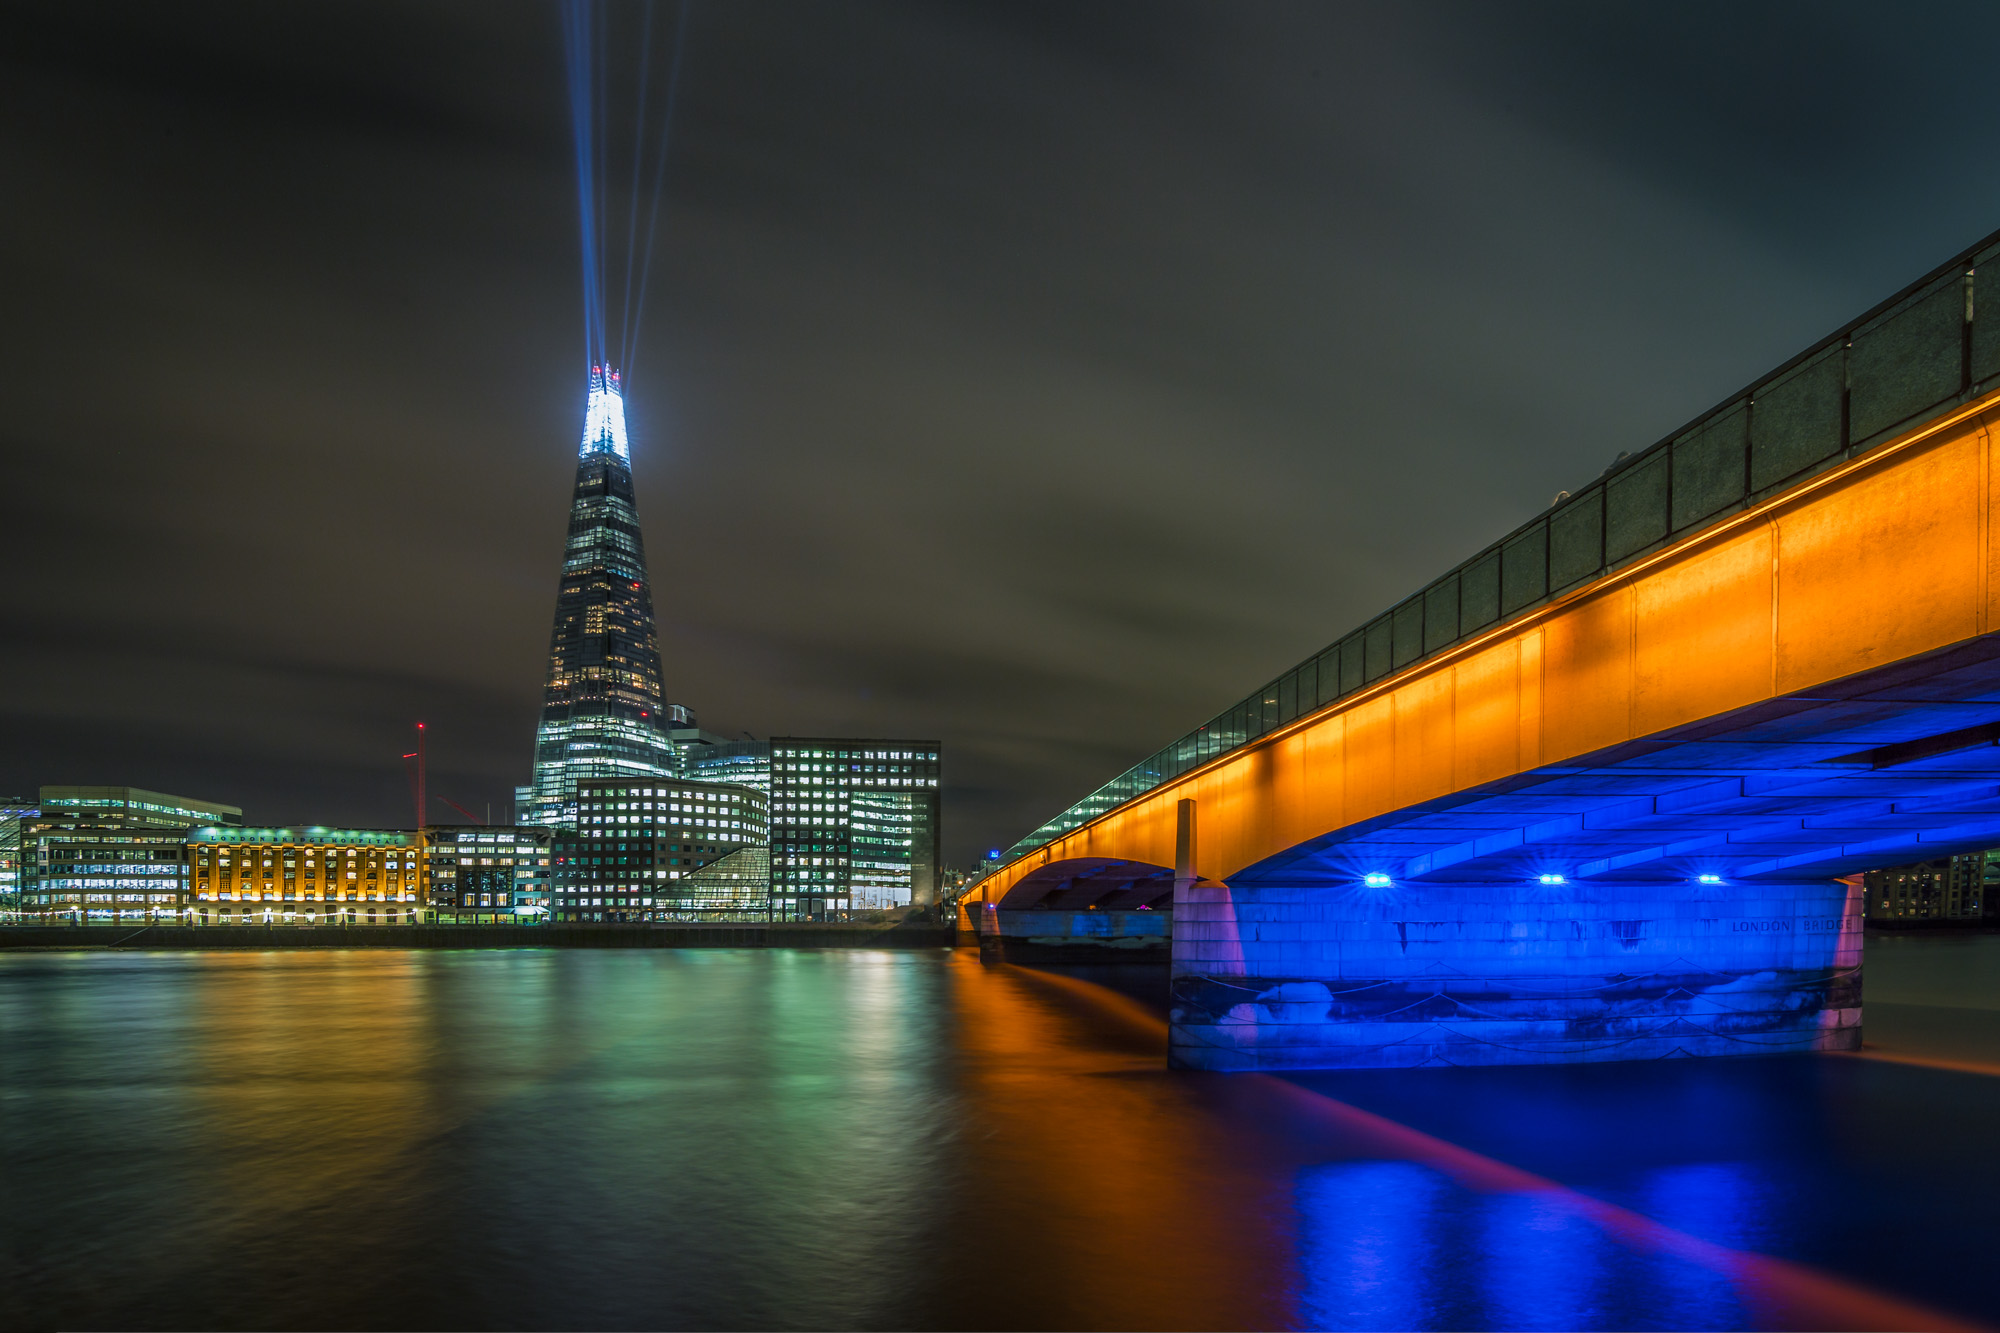 long exposure night photography of a laser light show from the Shard building by the river Thames and London Bridge i